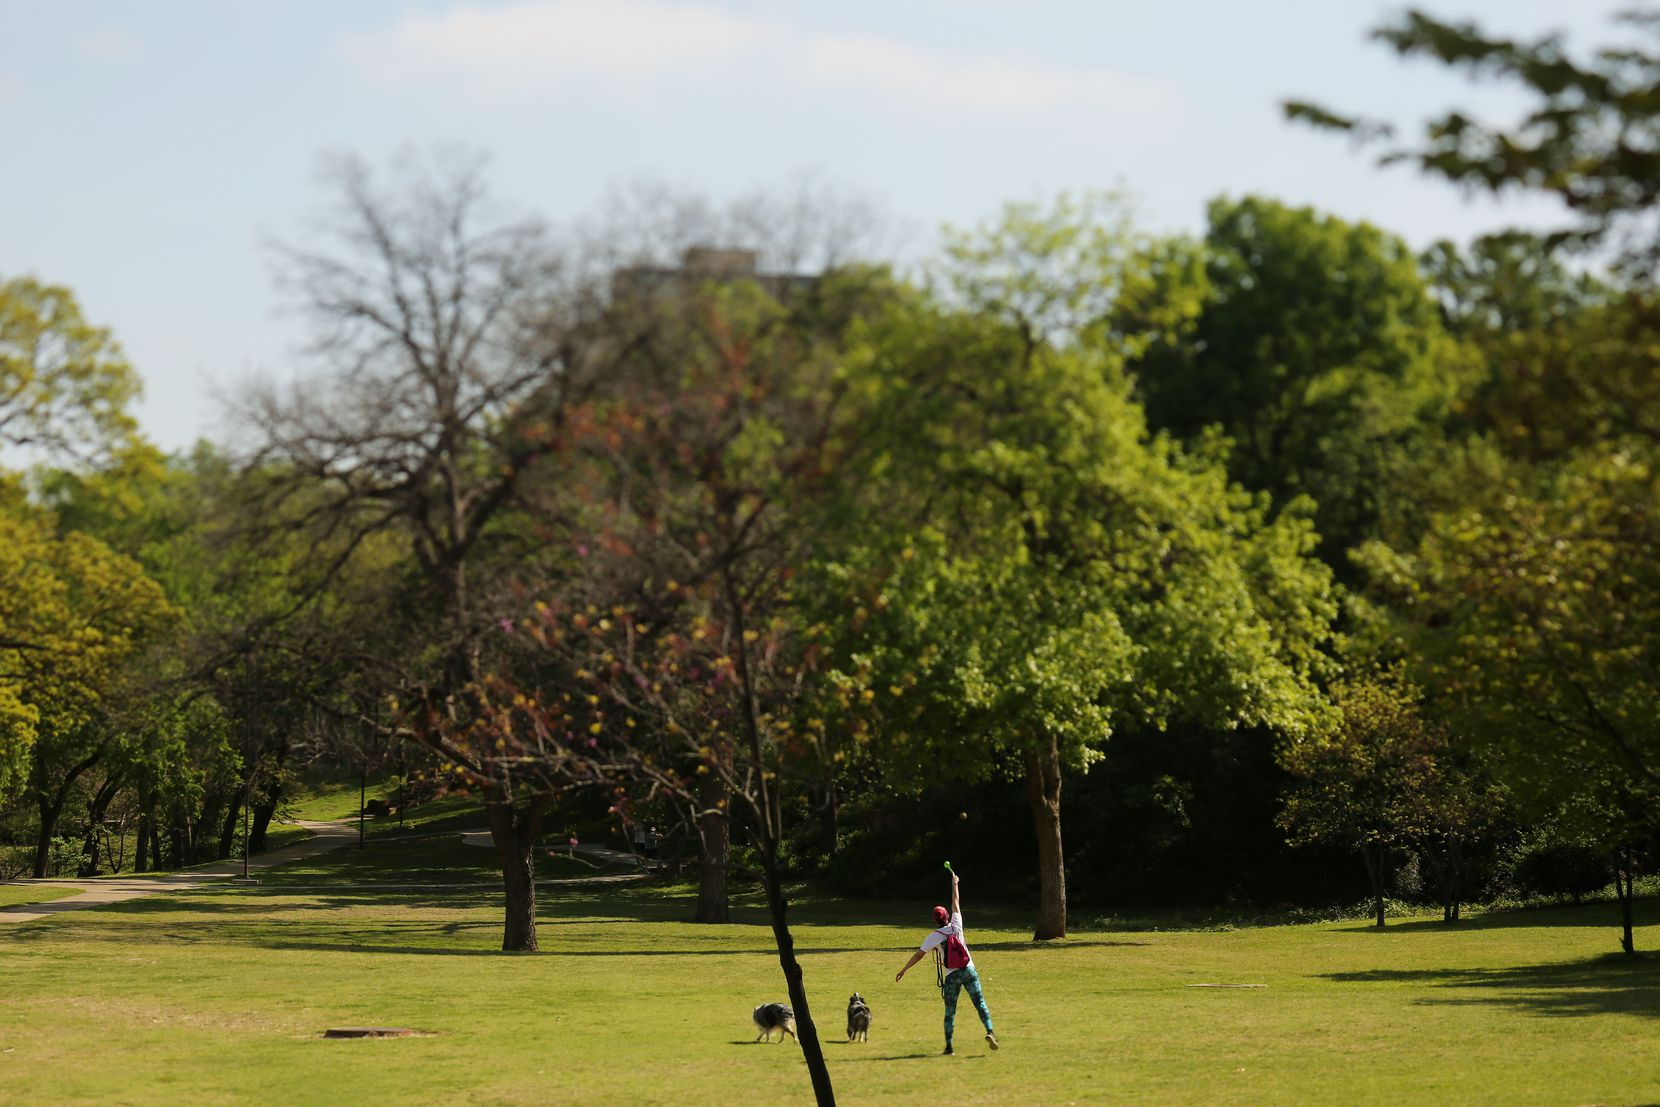 In response to the controversy that broke out over proposed changes for Reverchon Park, the Park Board last month passed new procedures that will allow it to gauge community interest before any official requests for proposals go out.